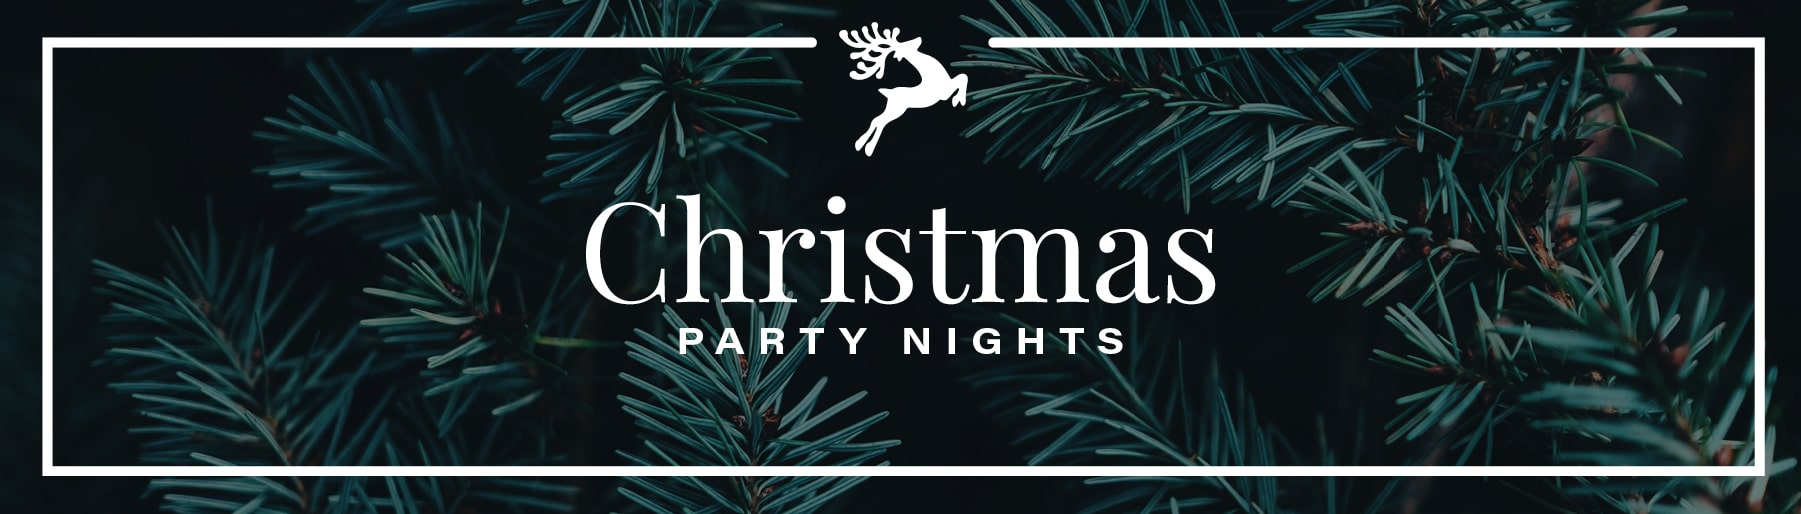 Christmas Party Nights 2021